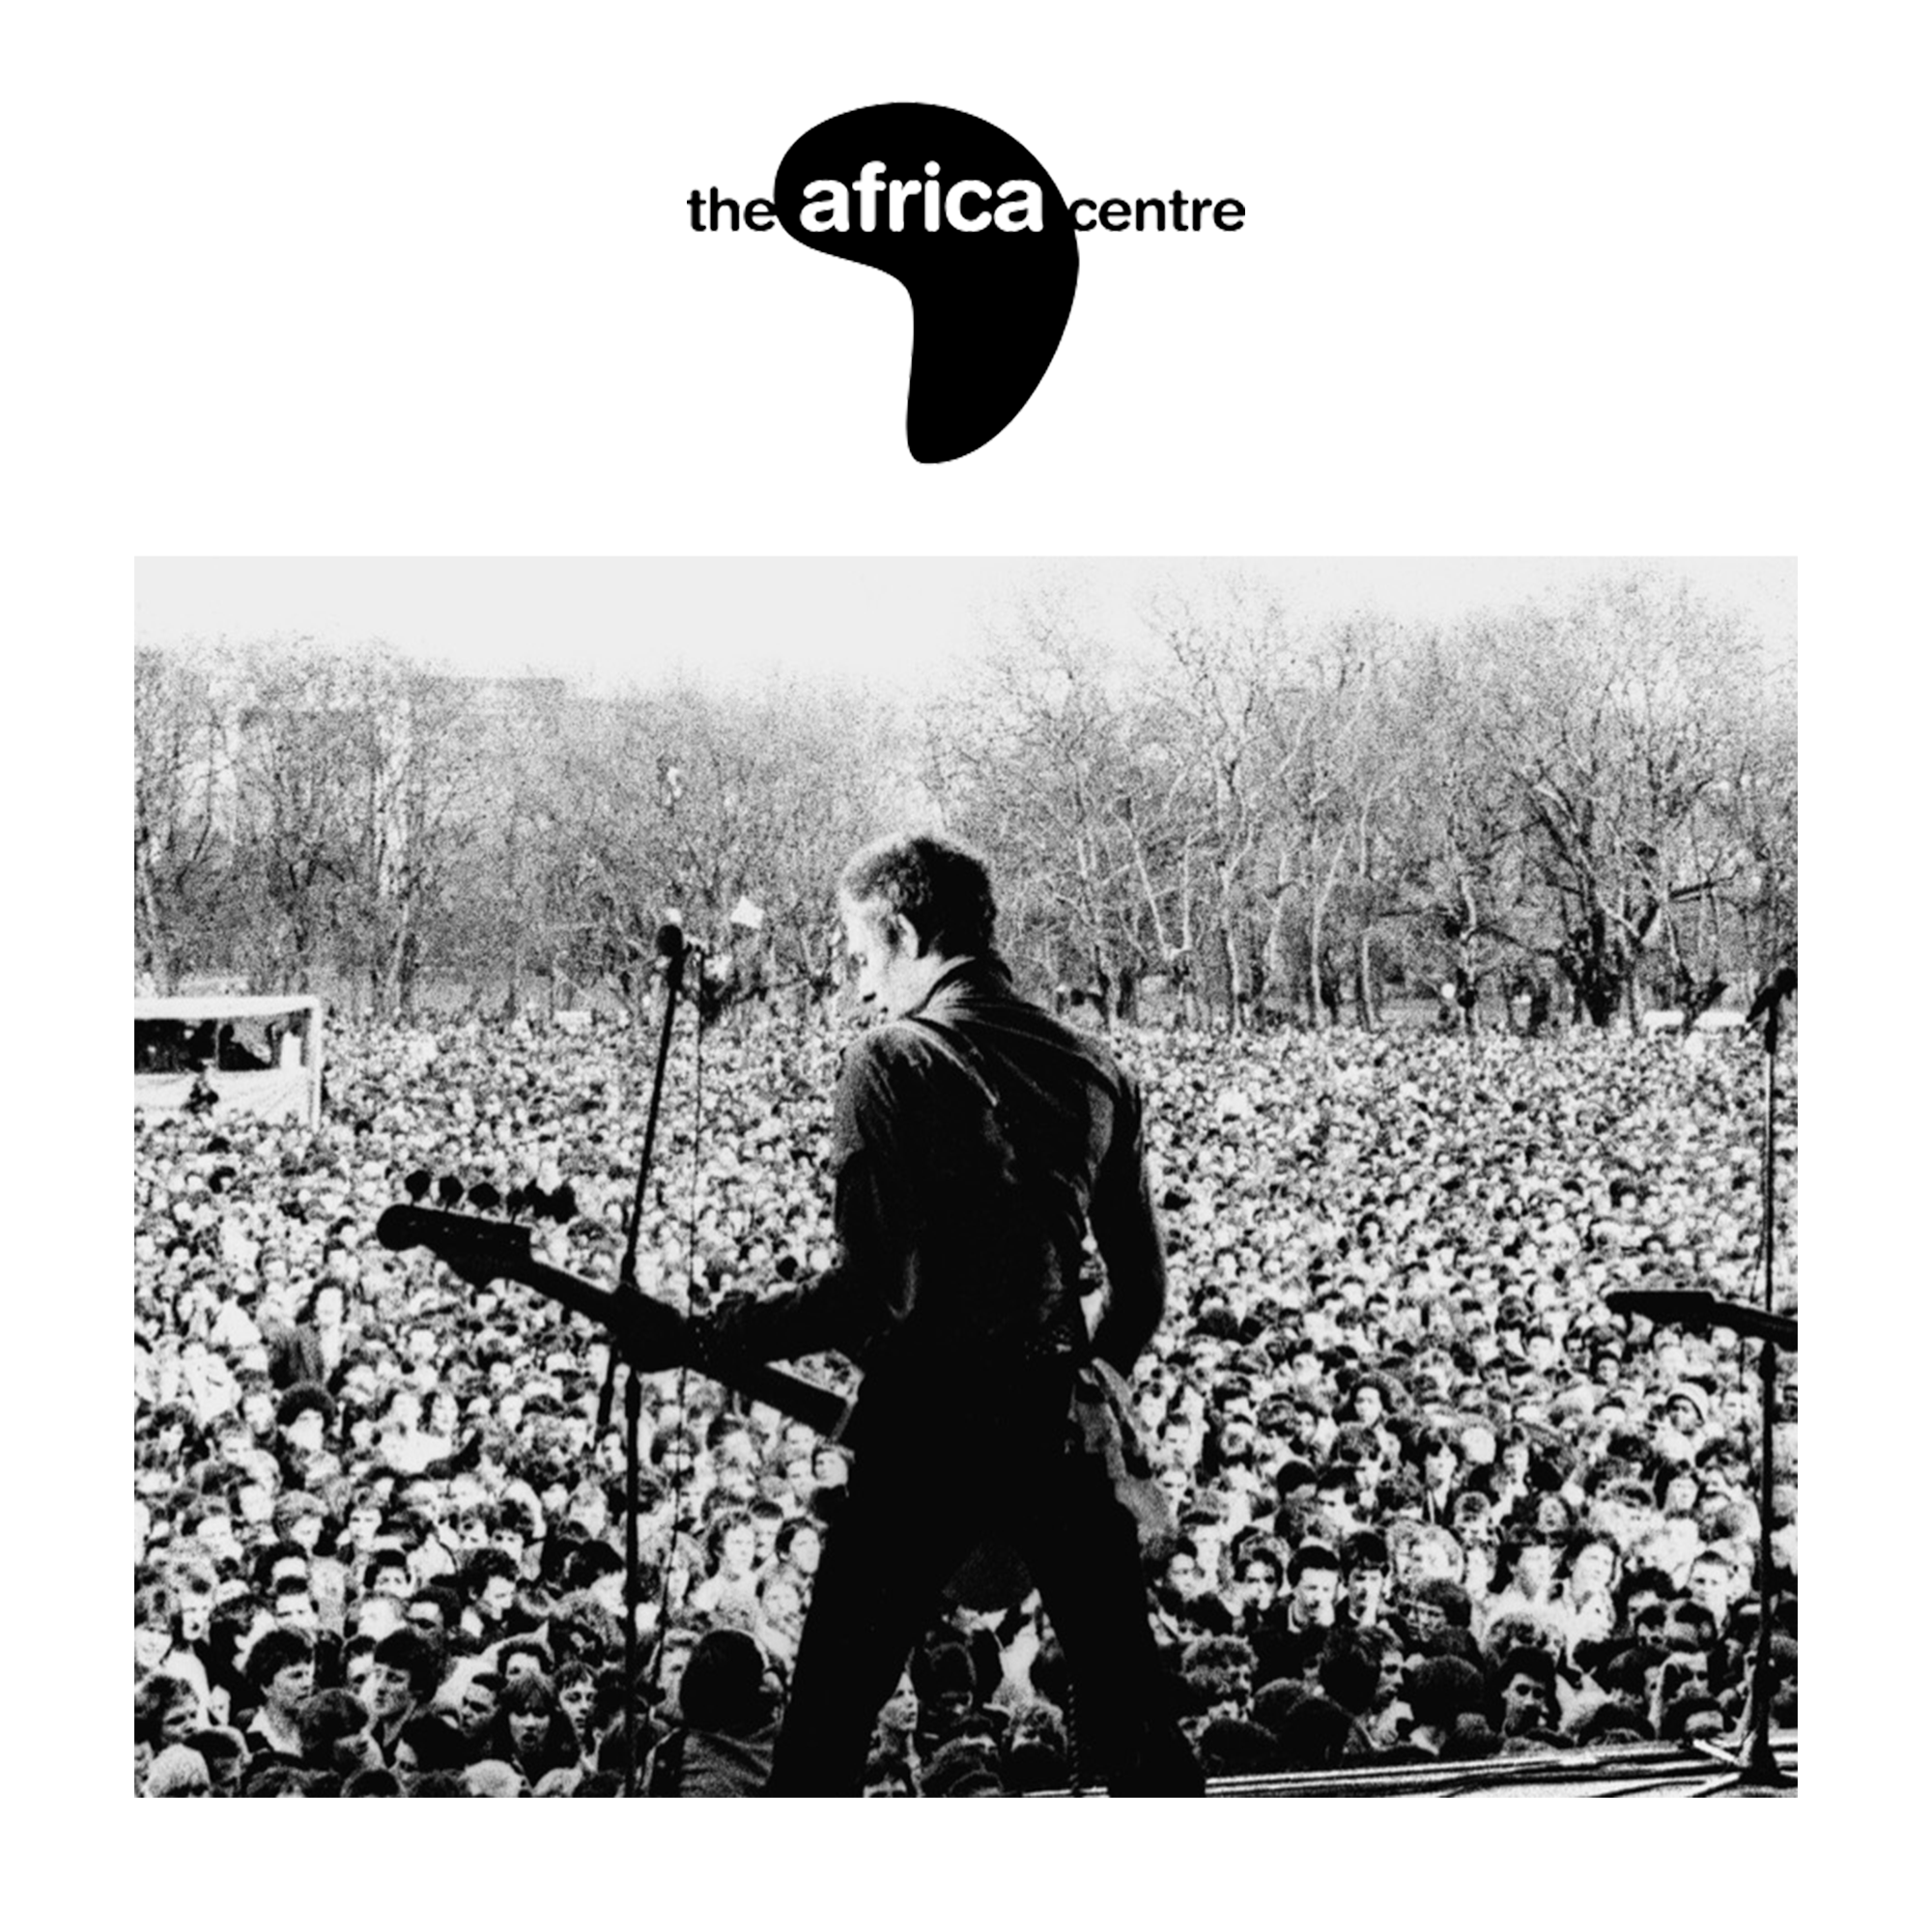 WHITE RIOT at The Africa Centre